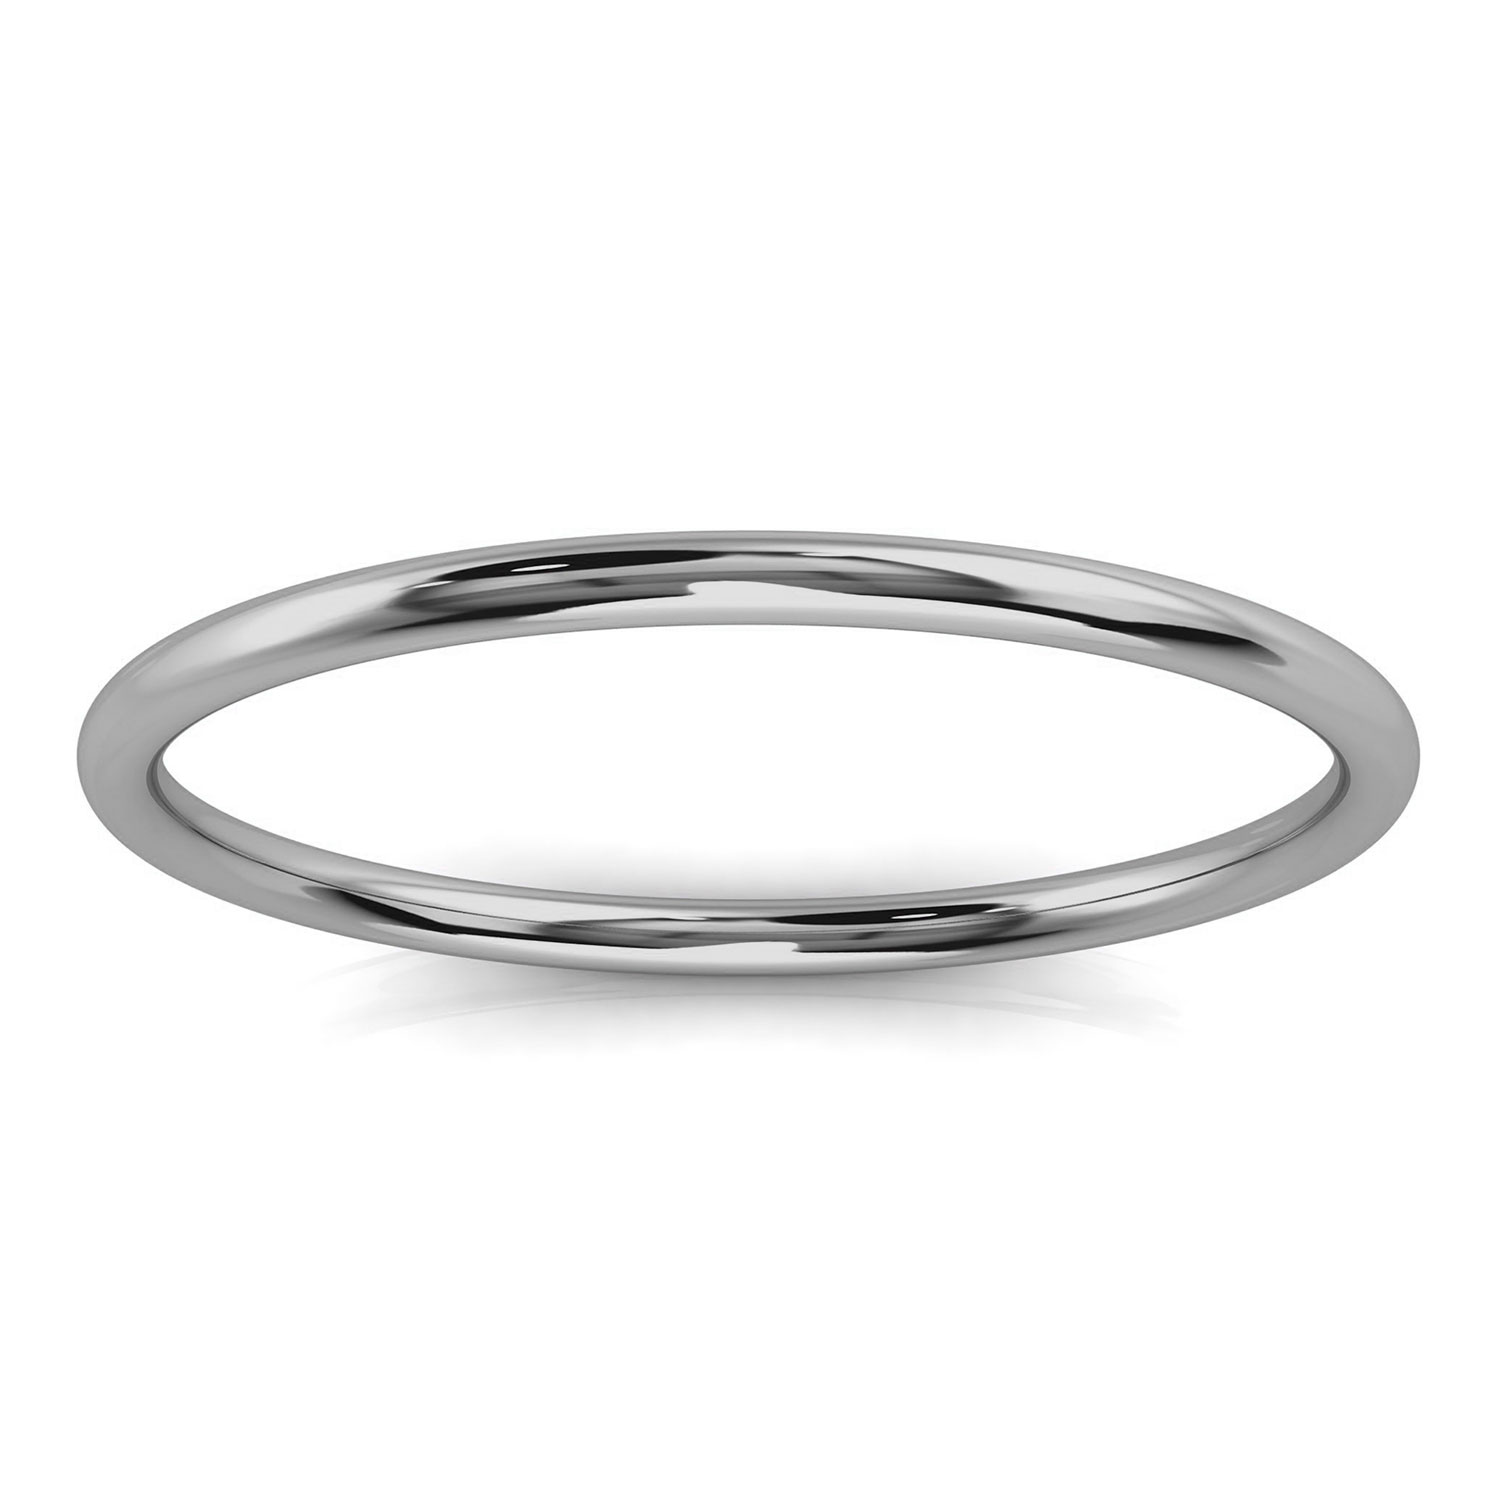 14K White Gold Minimalist Plain Nora Band 1.2 MM Wide